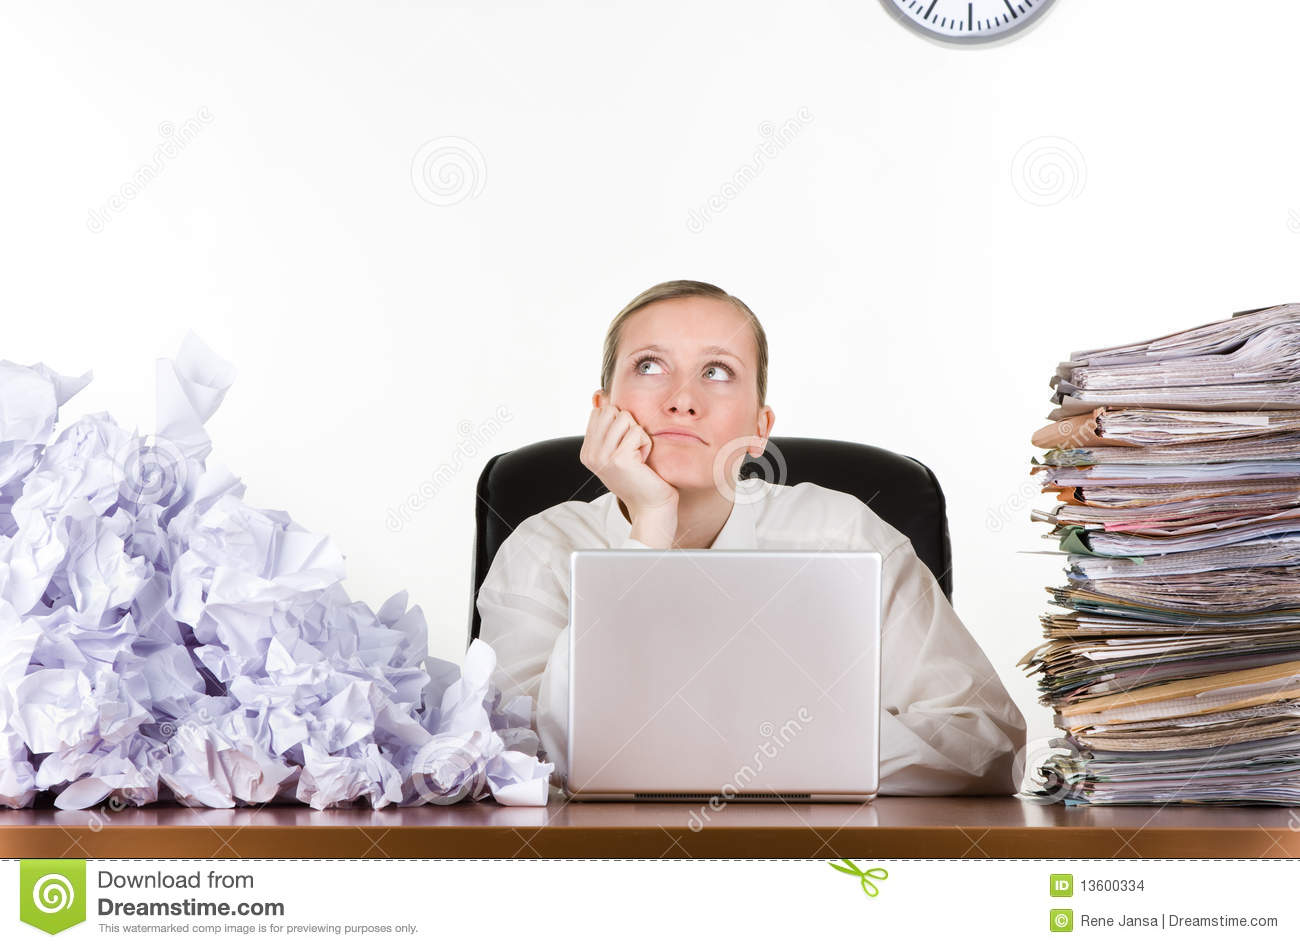 woman sitting at her desk and daydreaming while work piles up. .